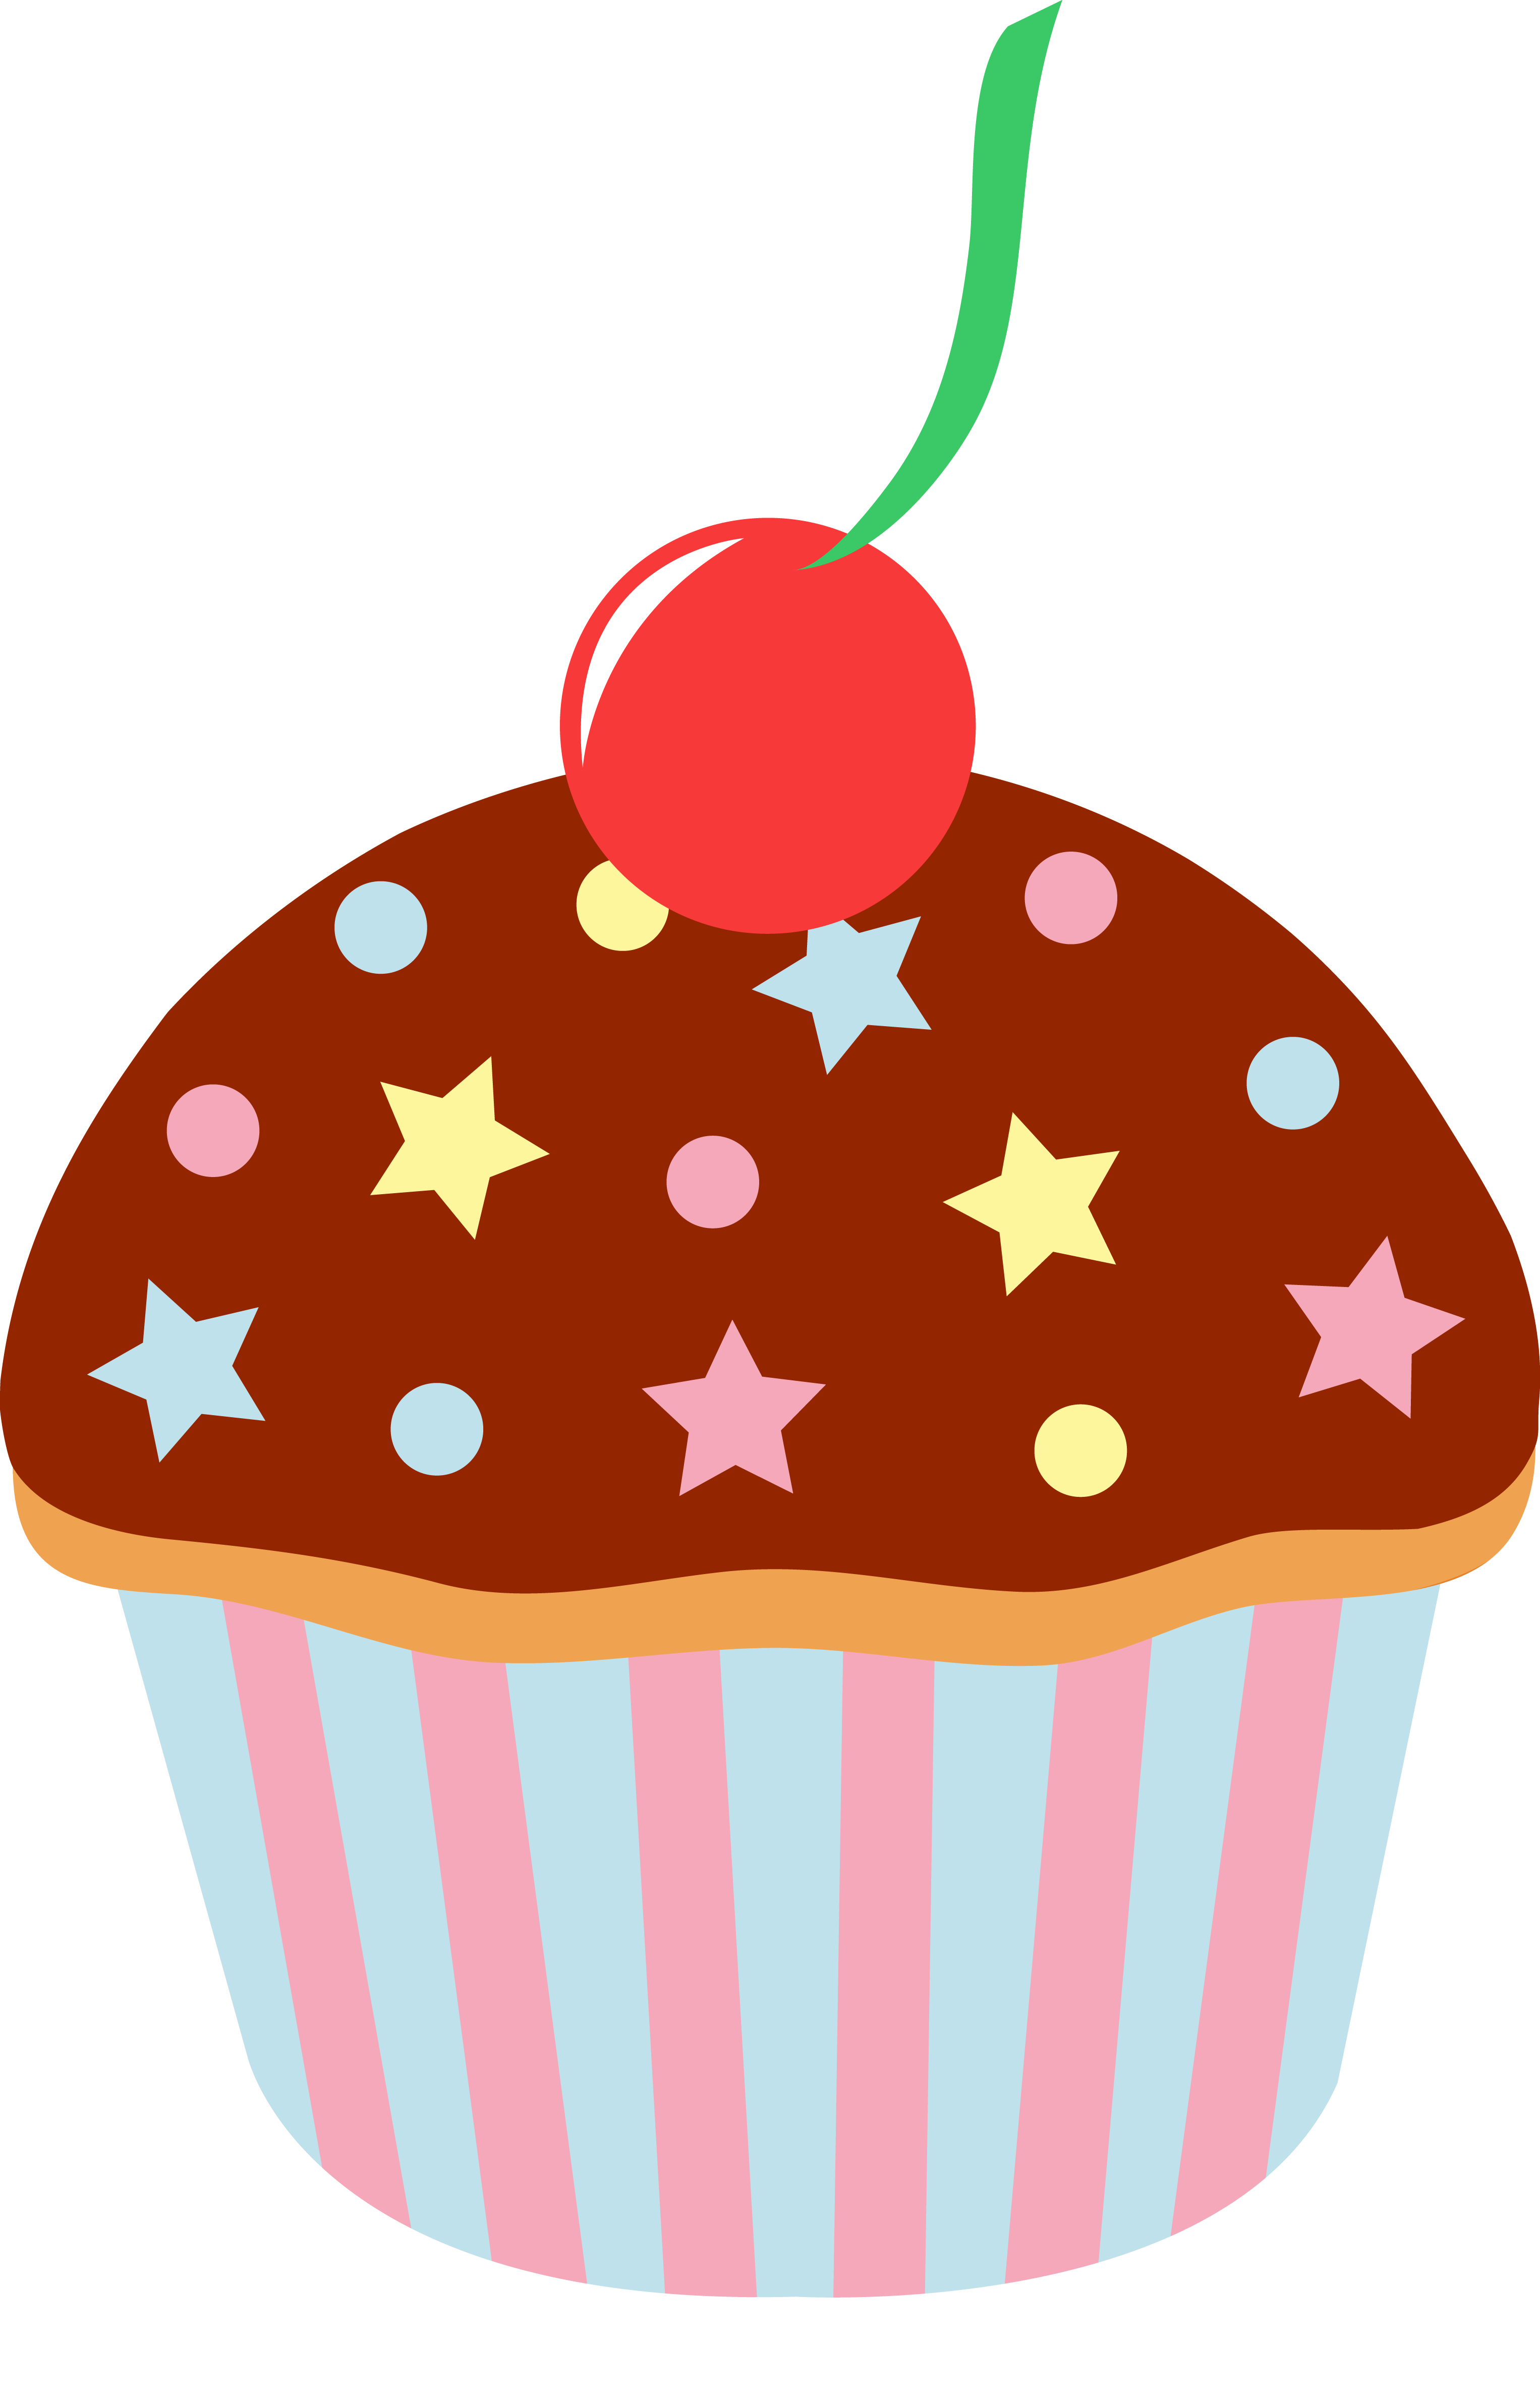 Free Cupcake Clip Art Pictures.